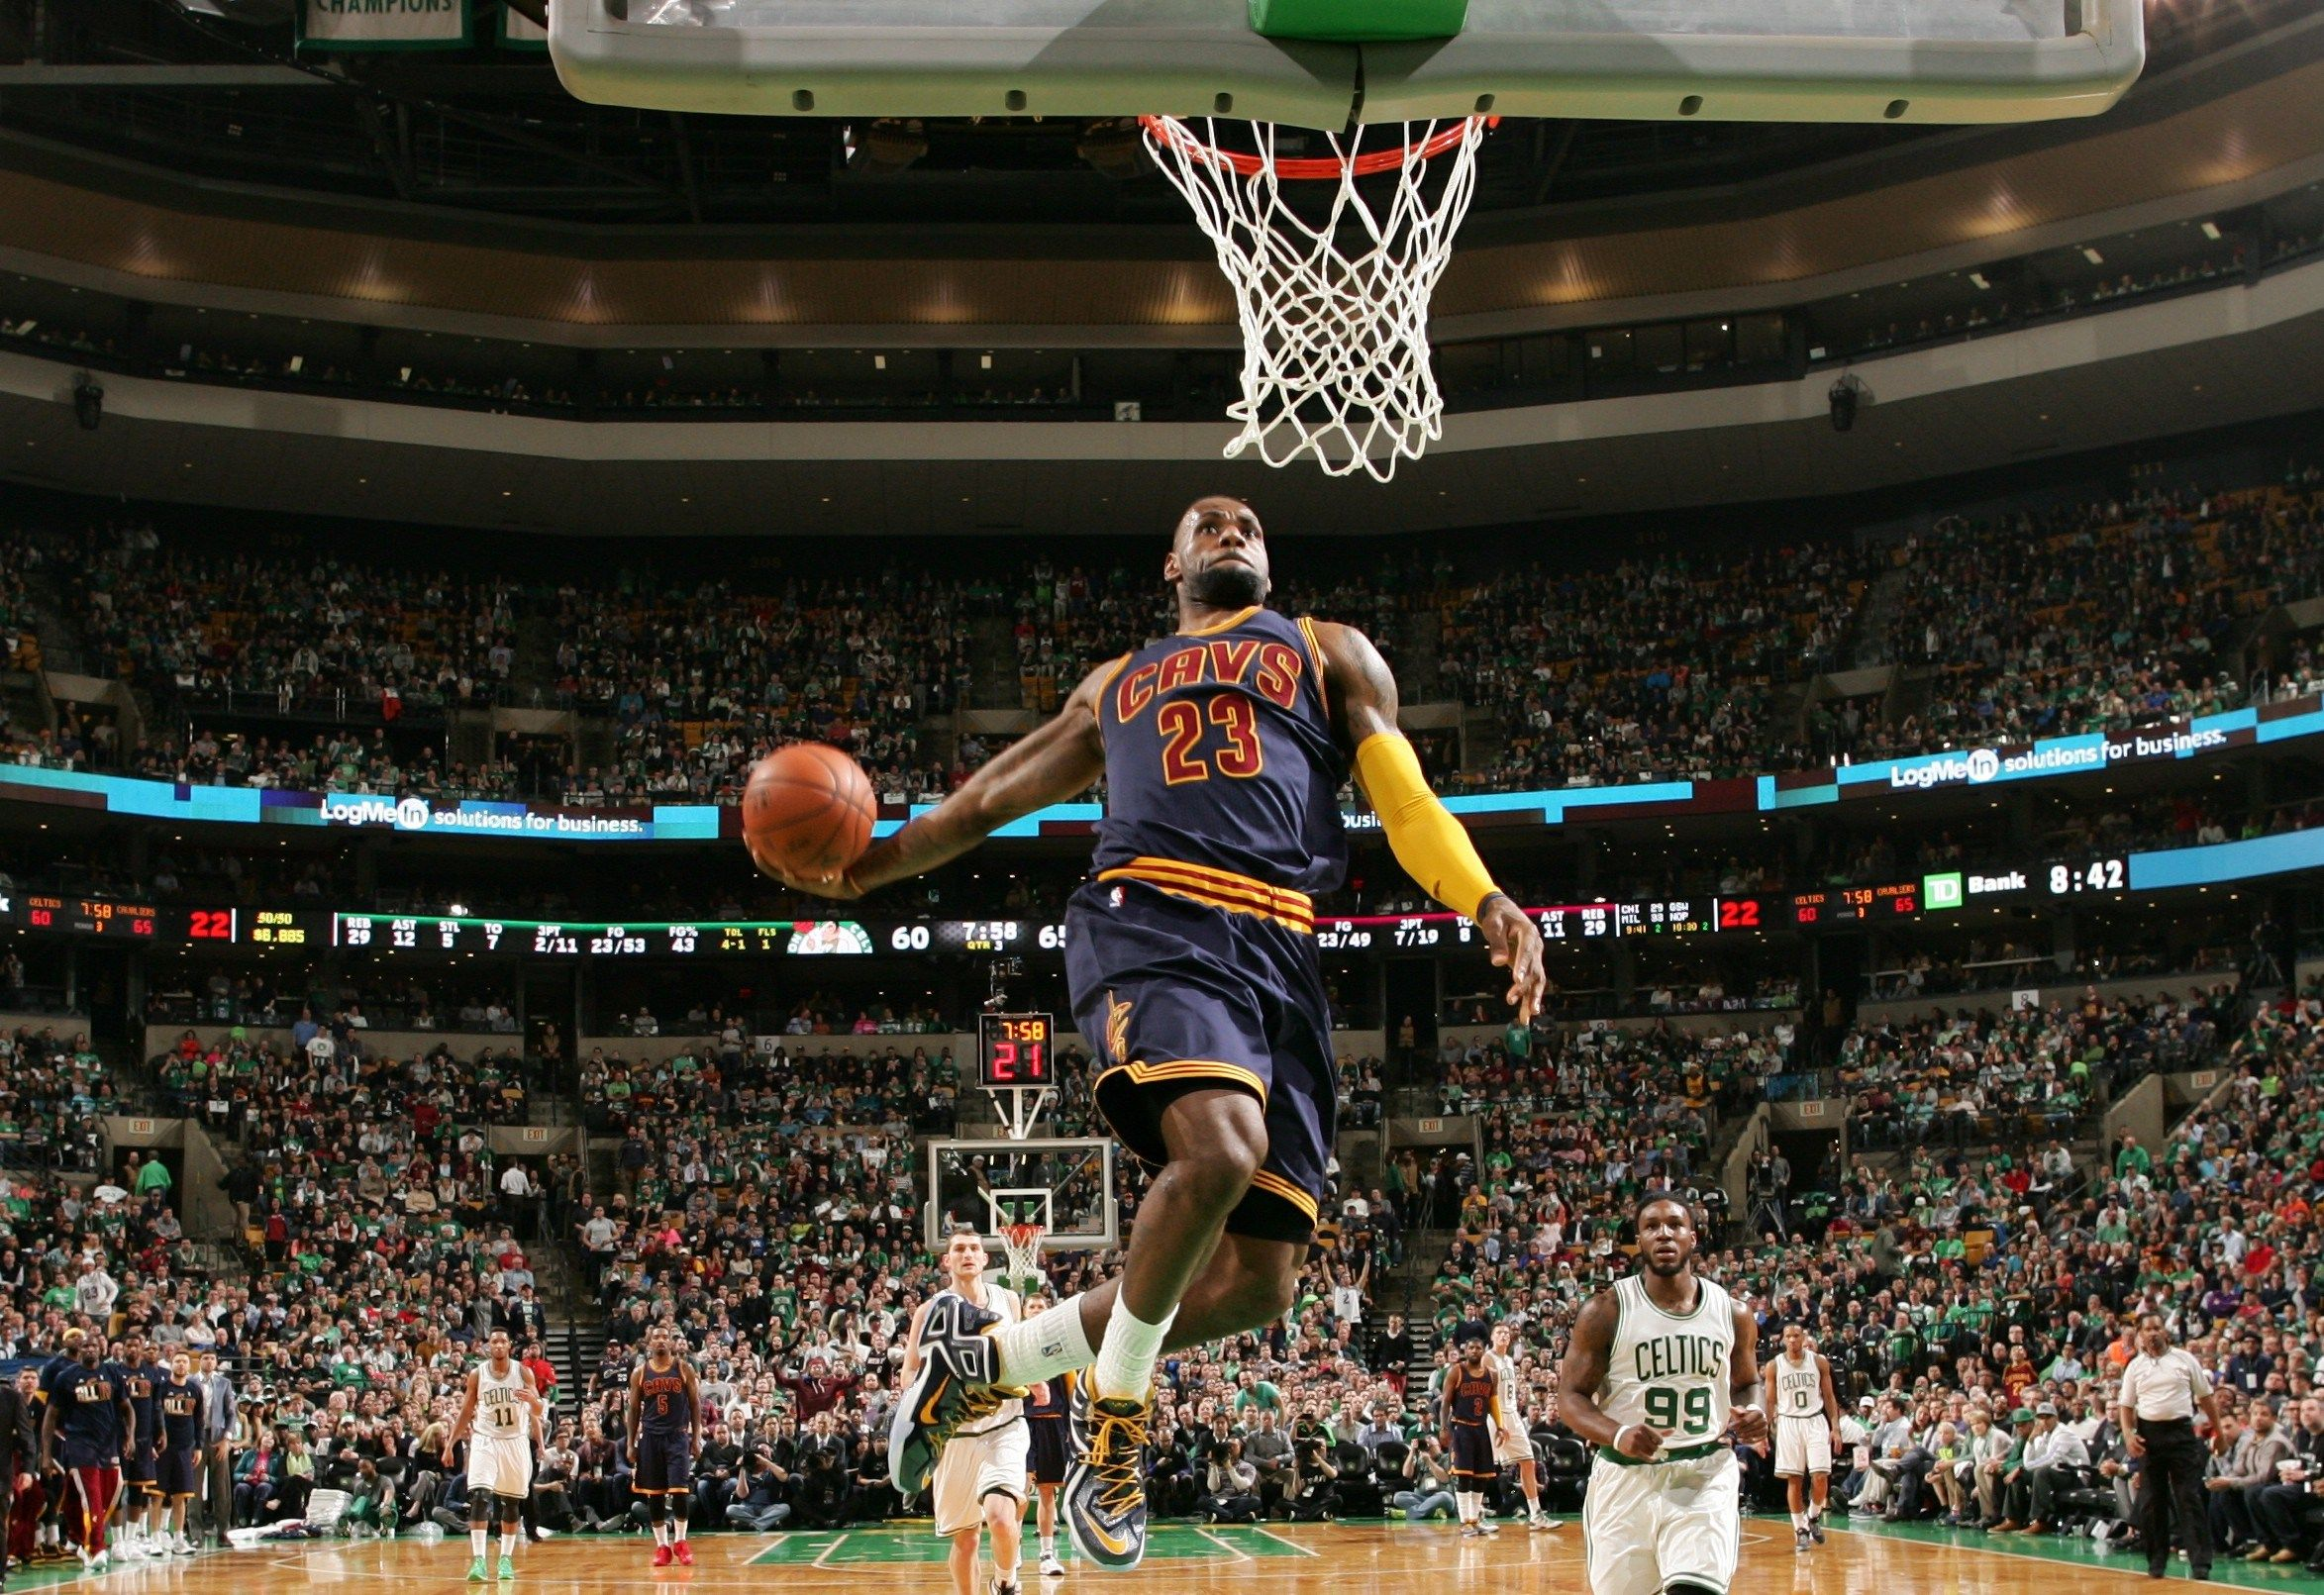 Image for Lebron James Dunk Wallpaper Full HD i14ev